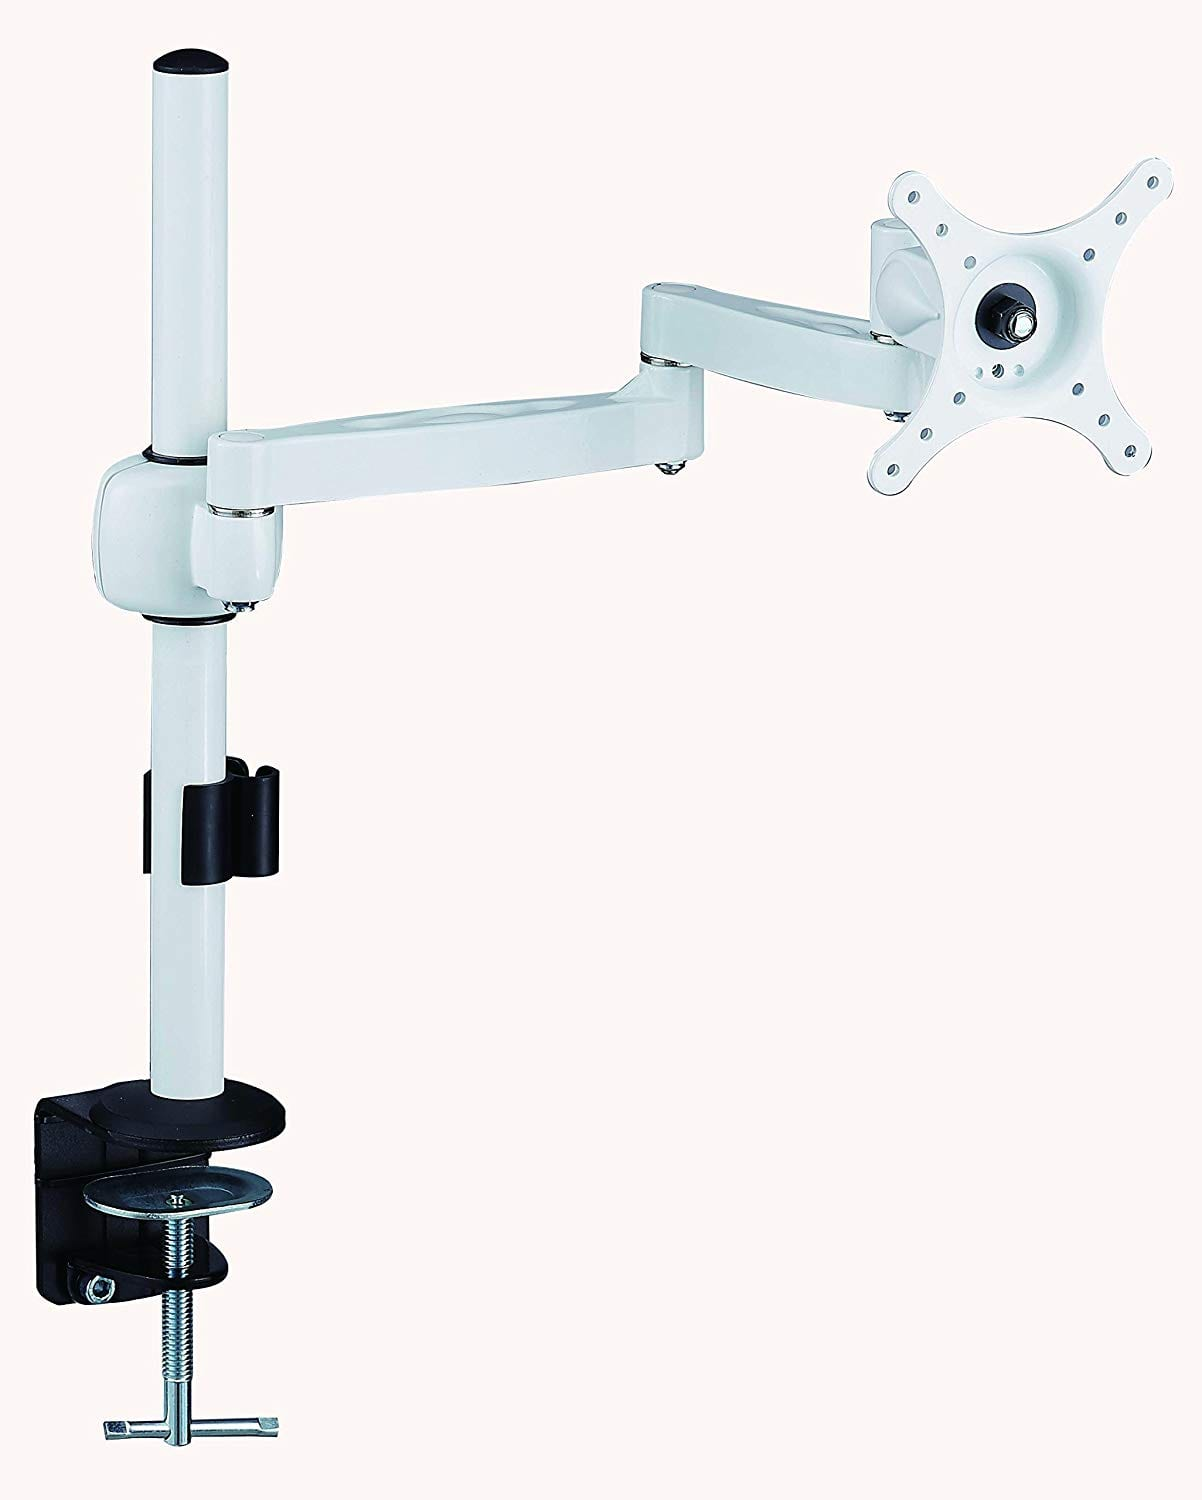 AVM04 for 1x LCD 6kg Tilt, Swivel, Rotate, White